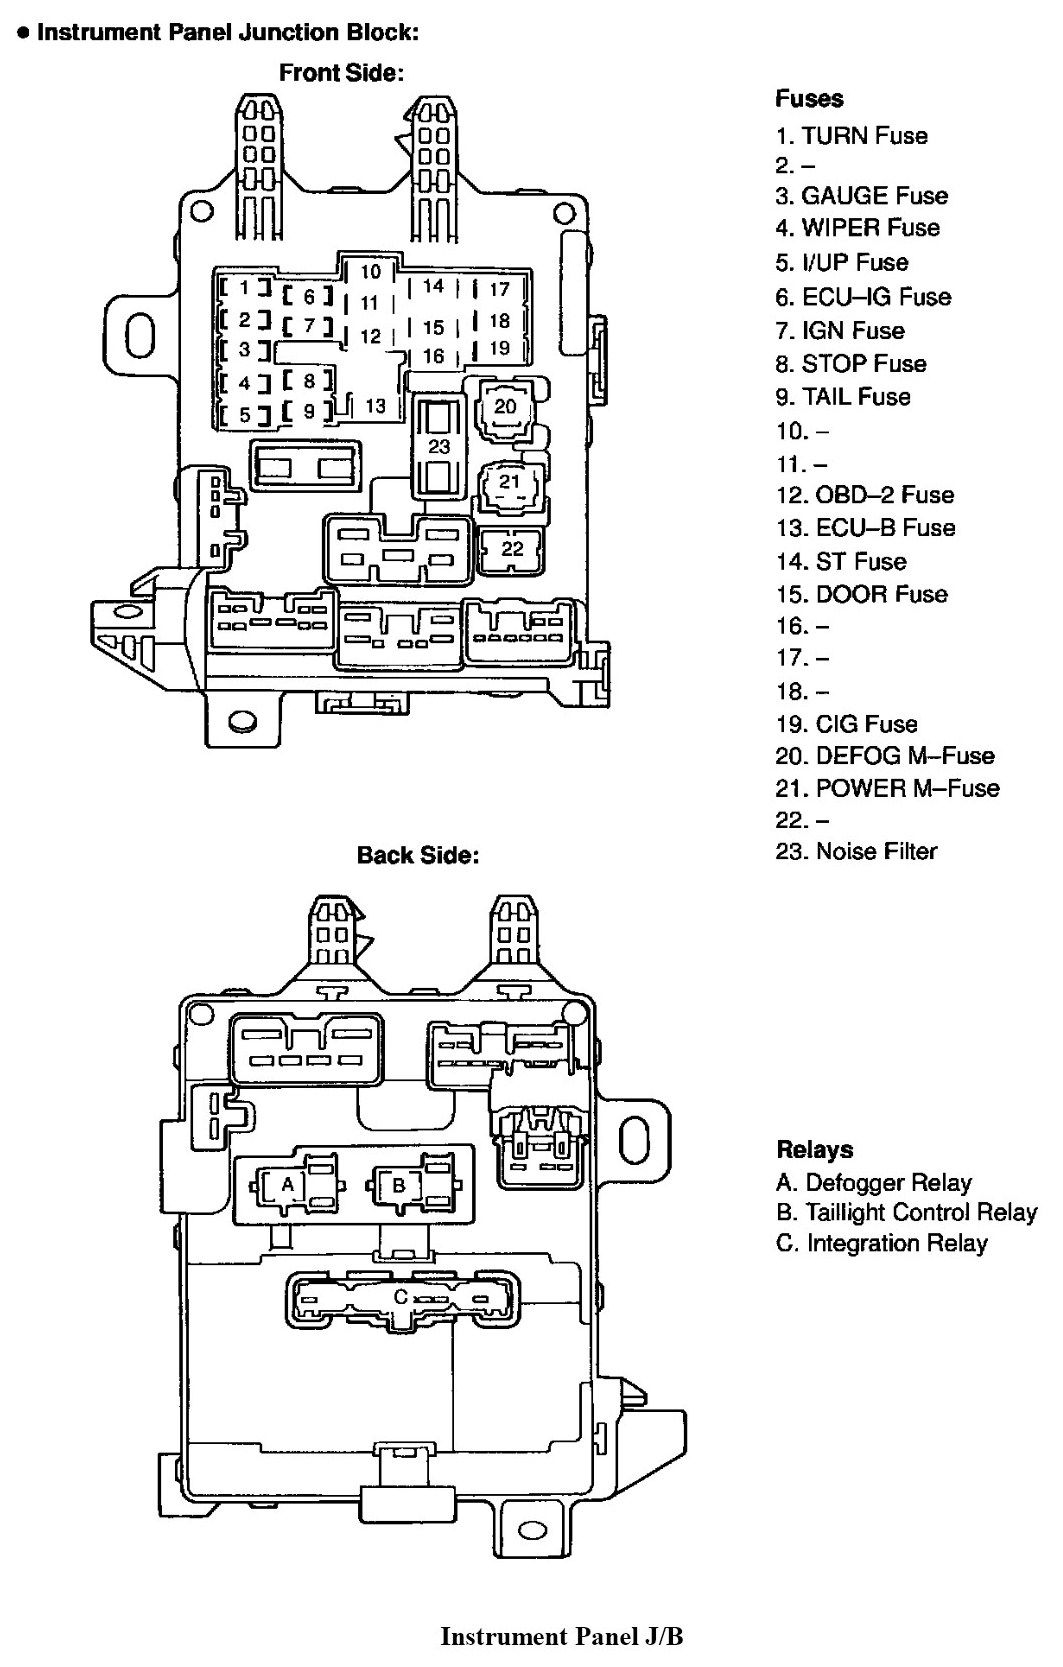 2003 corolla fuse box diagram wiring diagram 2003 Ford